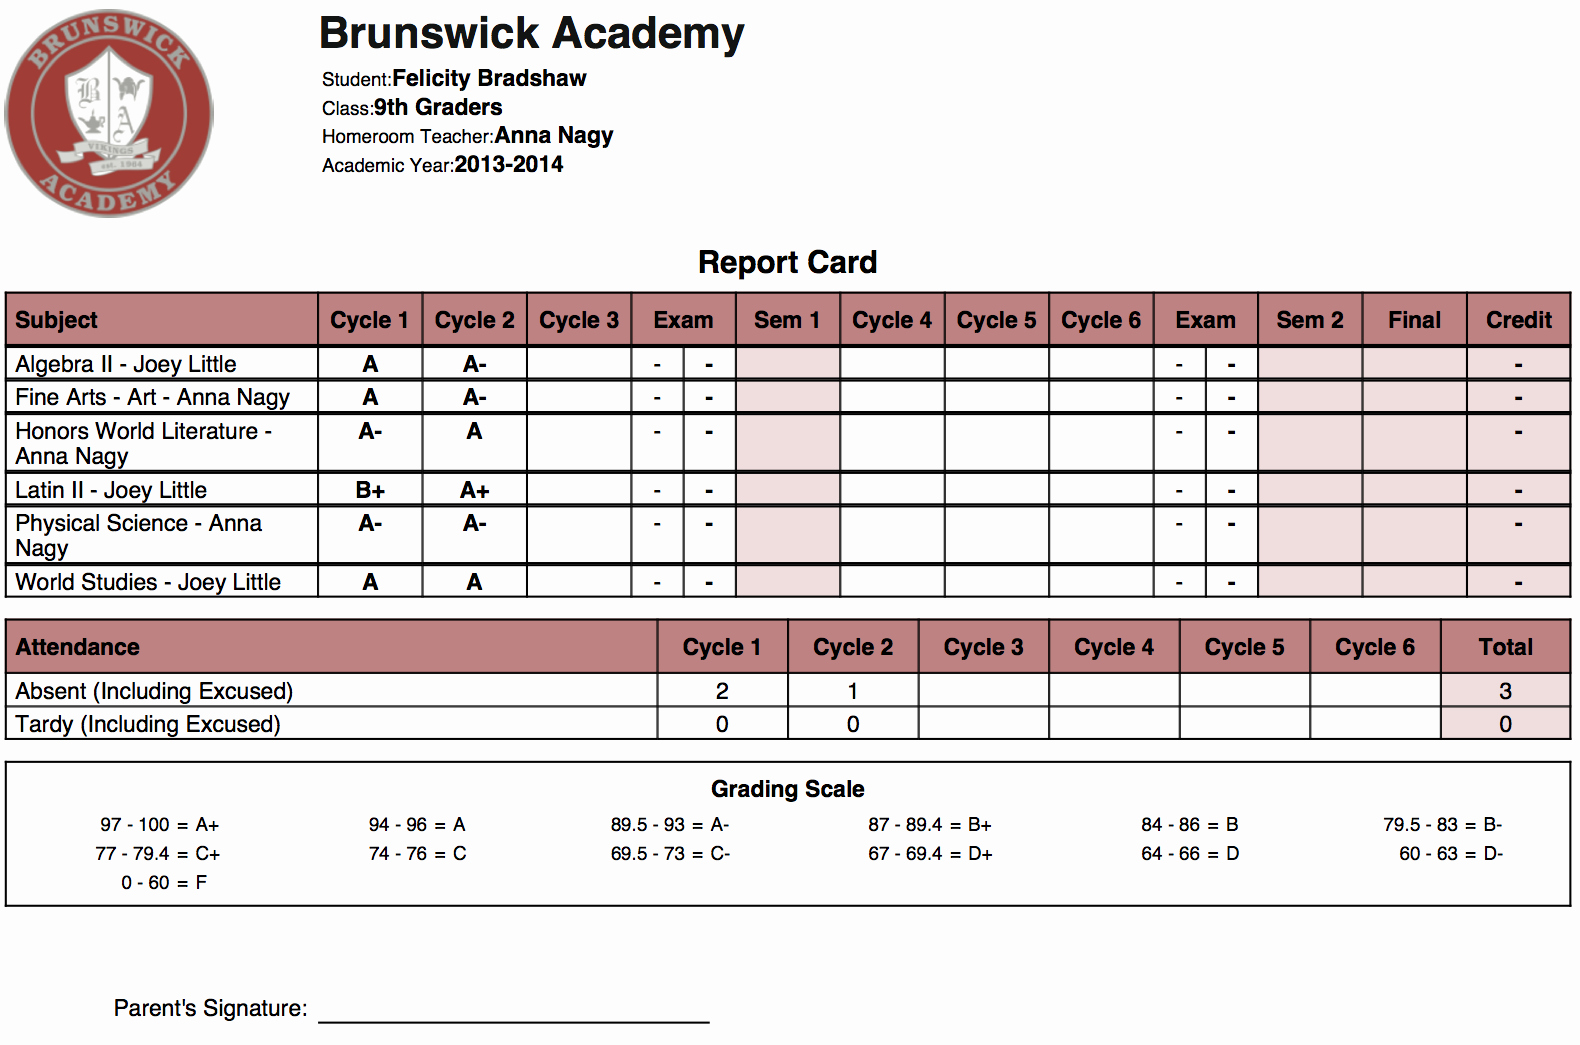 Student Report Card Template Unique the Brunswick Academy Report Cards